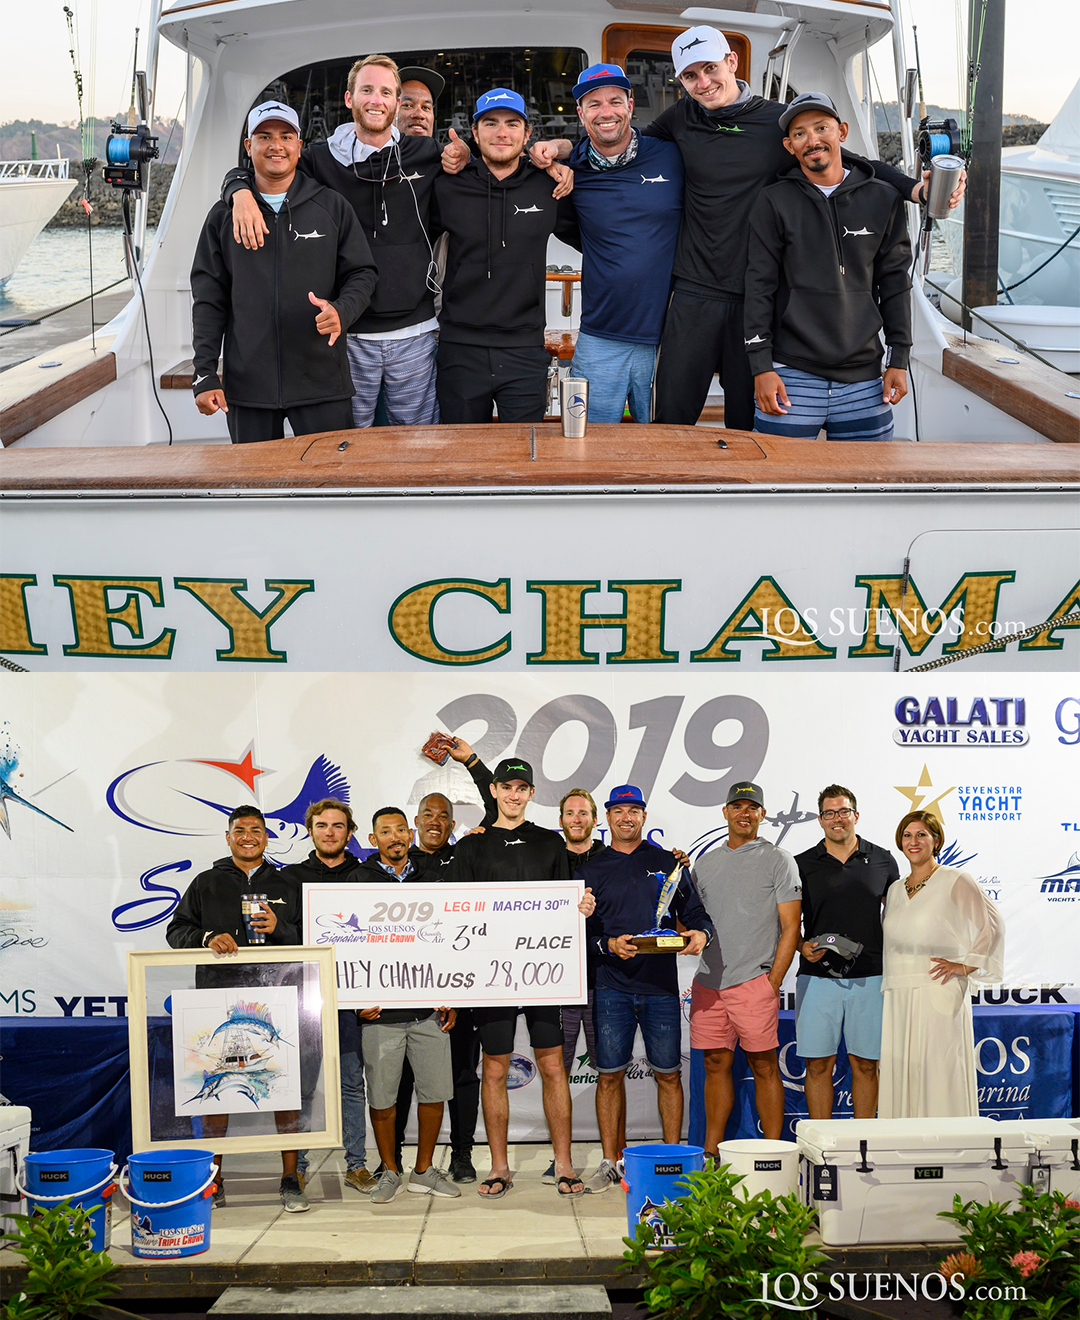 leo chapman and crewof the Hey Chama pose at the 2019 los suenos triple crown